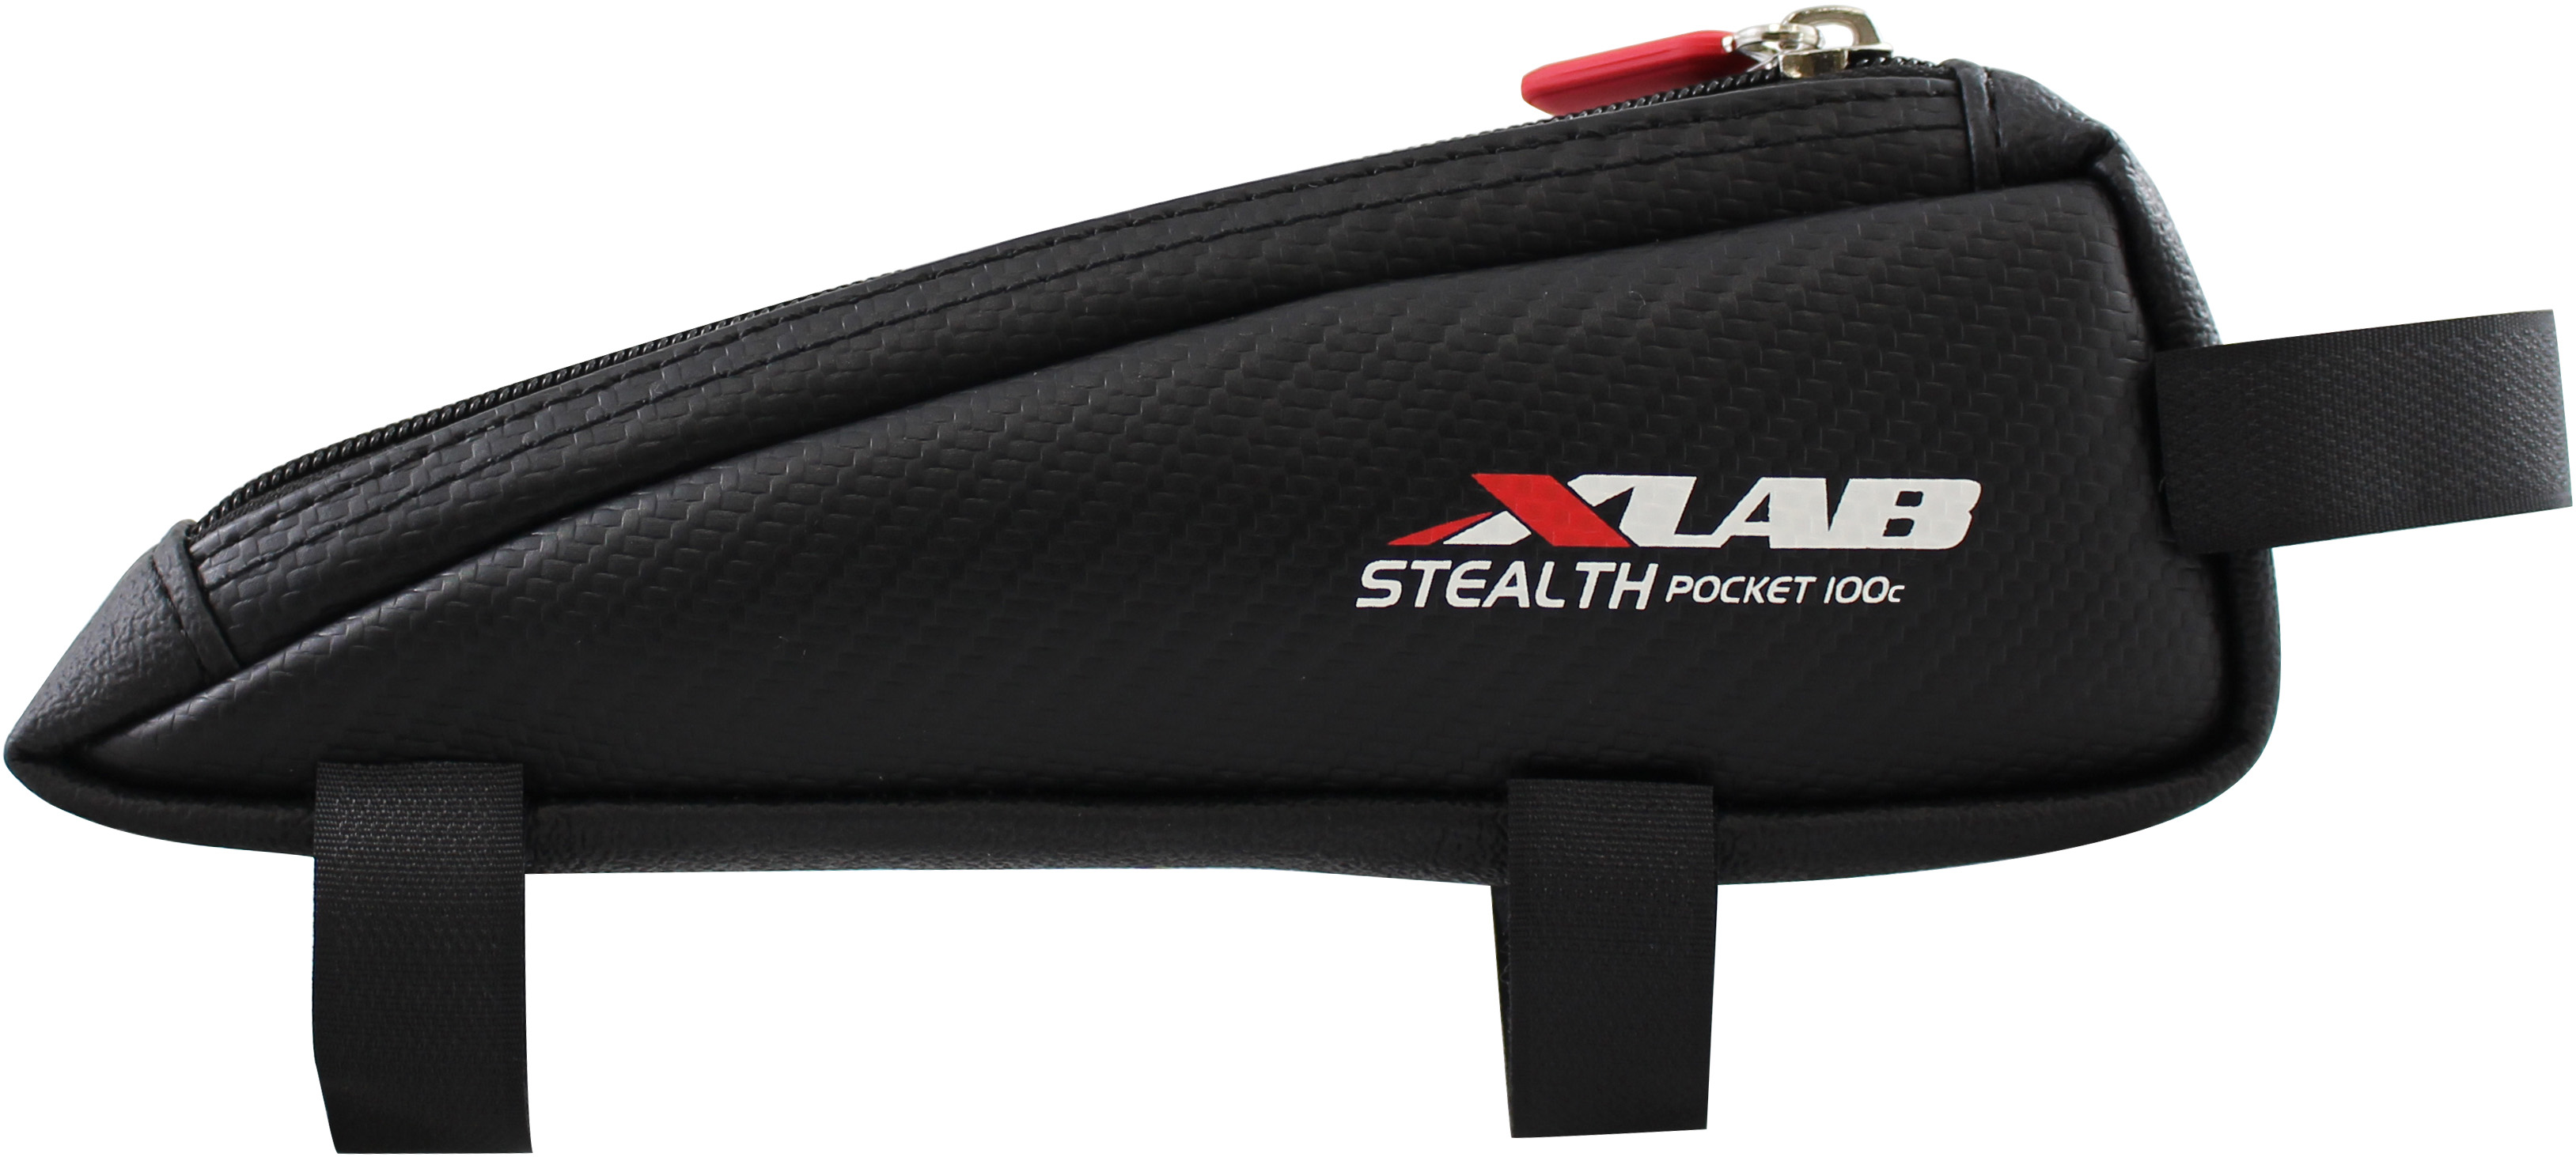 XLAB Stealth Pocket 100c Frame Bag | Frame bags